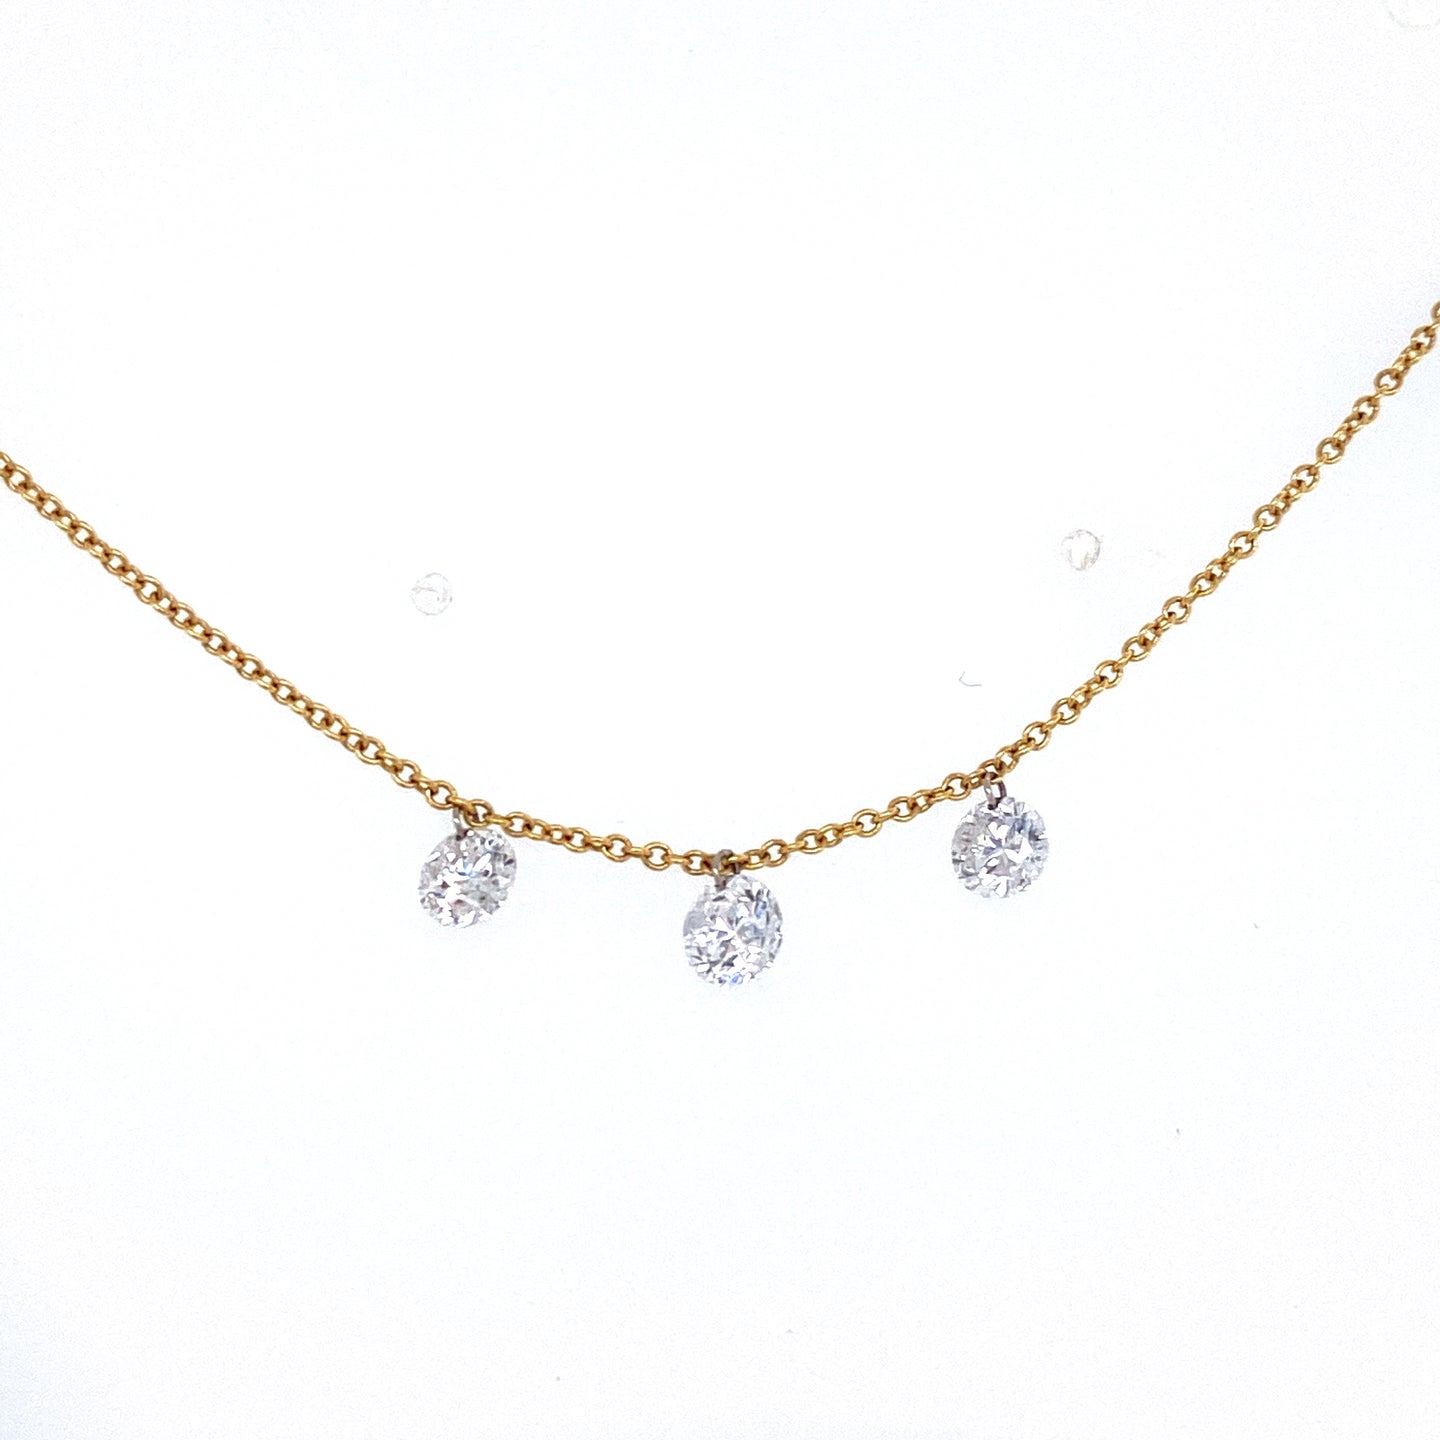 3 Dangling Diamond Necklace